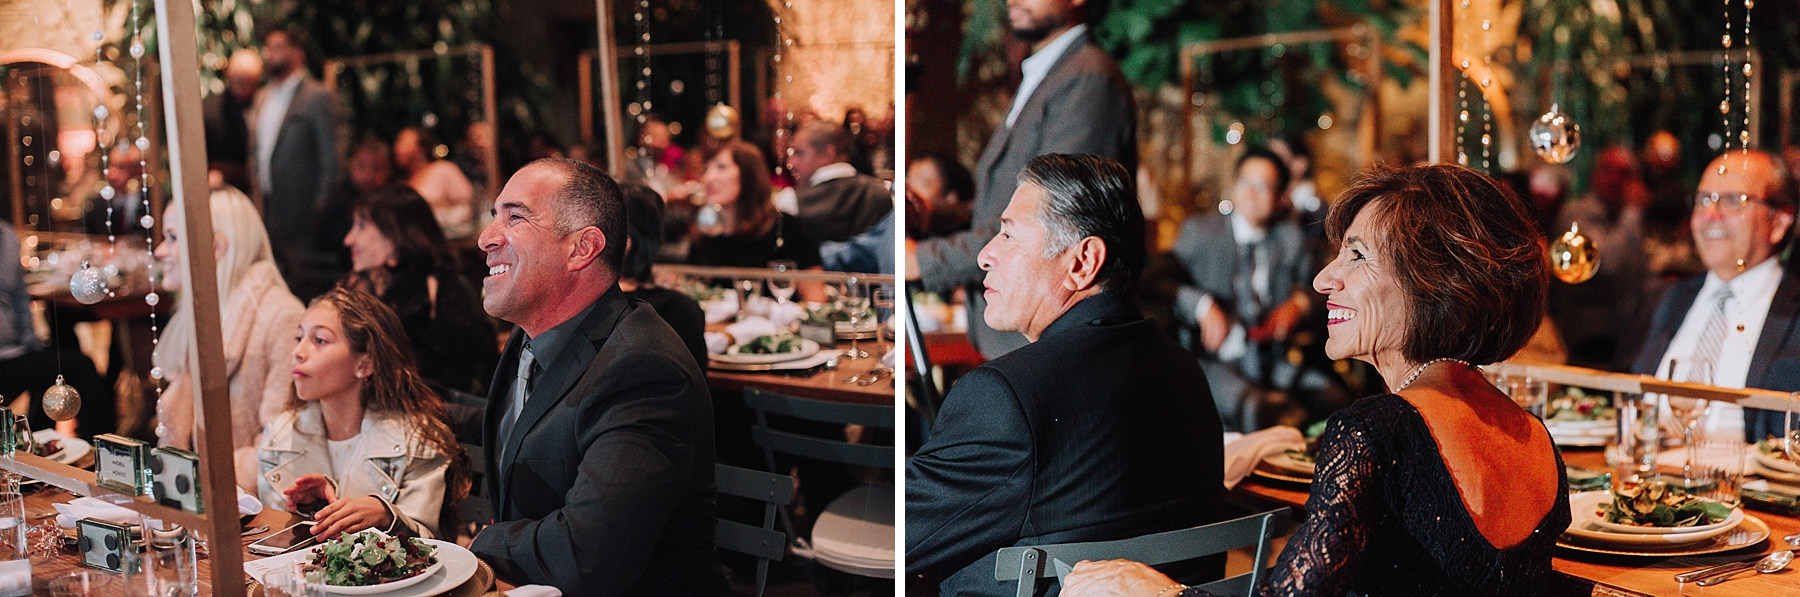 Wedding Guests, Millwick Downtown Los Angeles